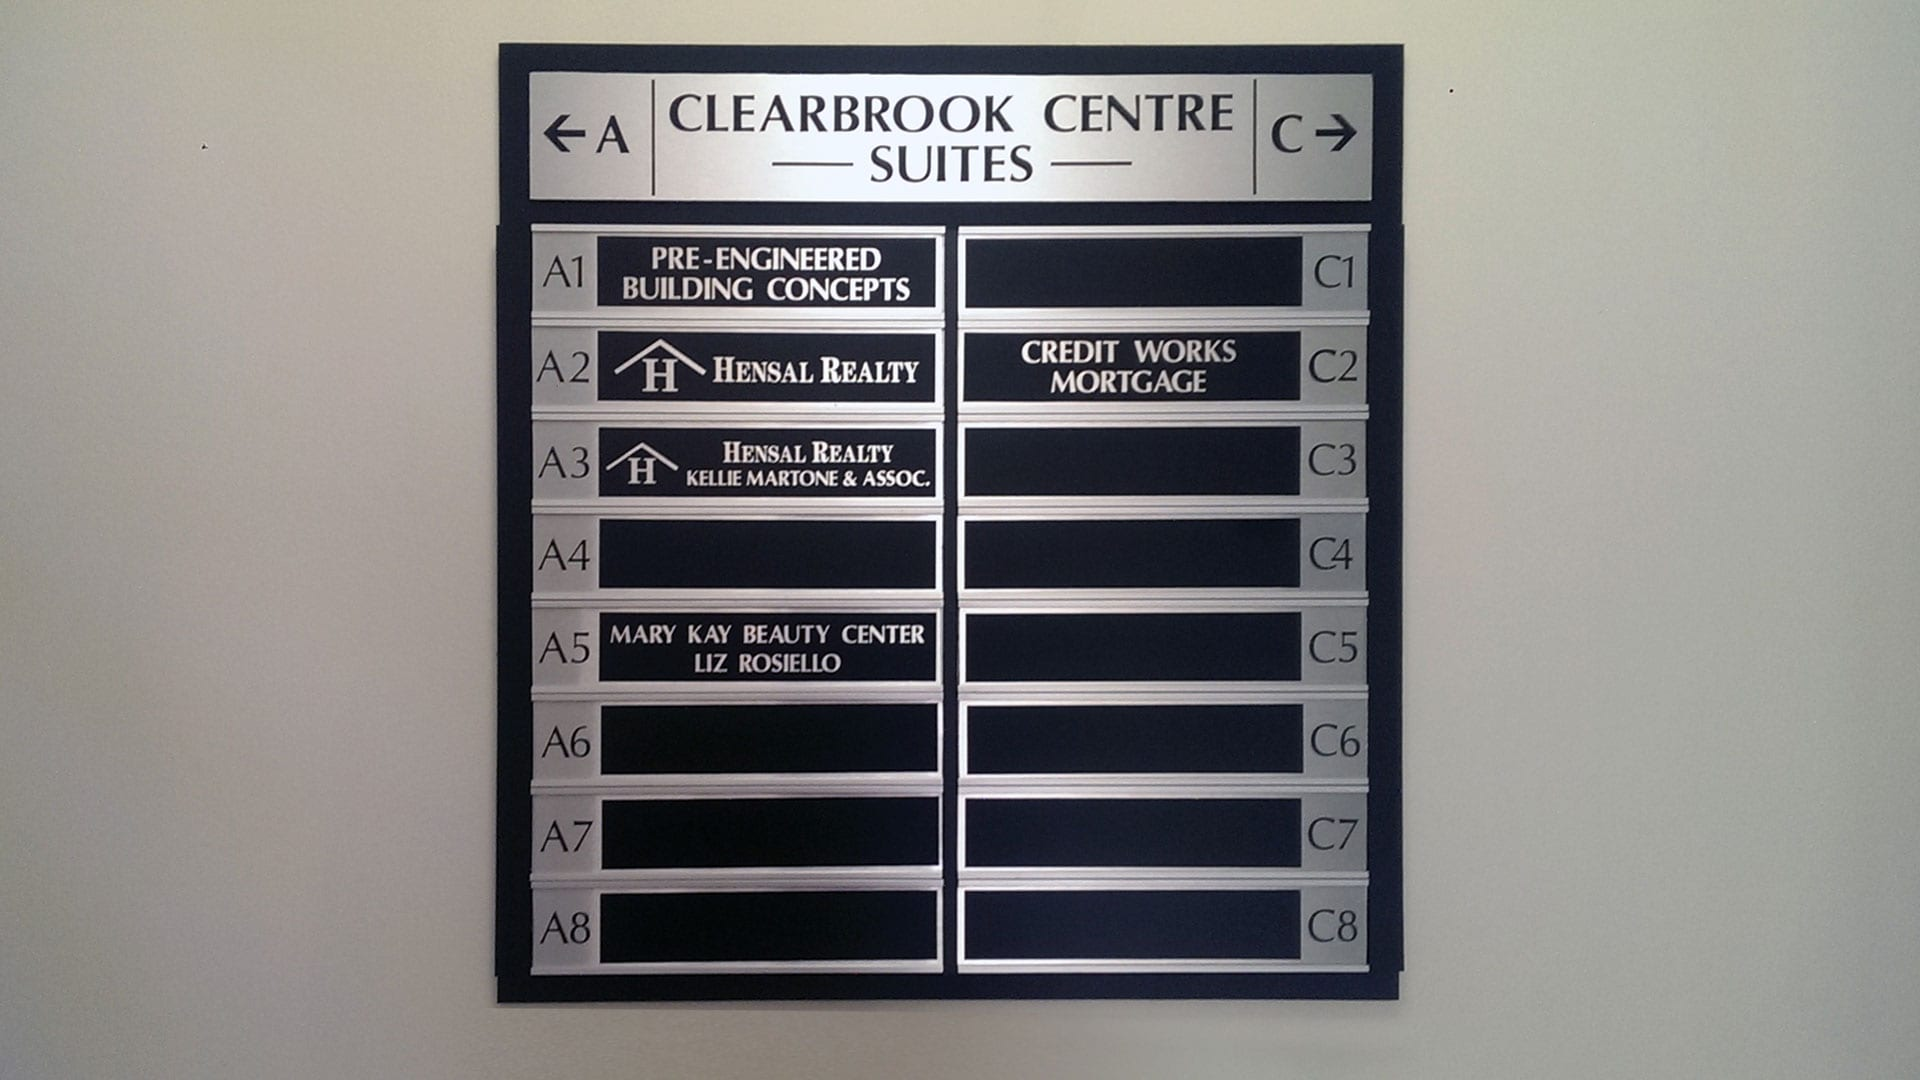 Clearbrook Centre Suites interior directories sign